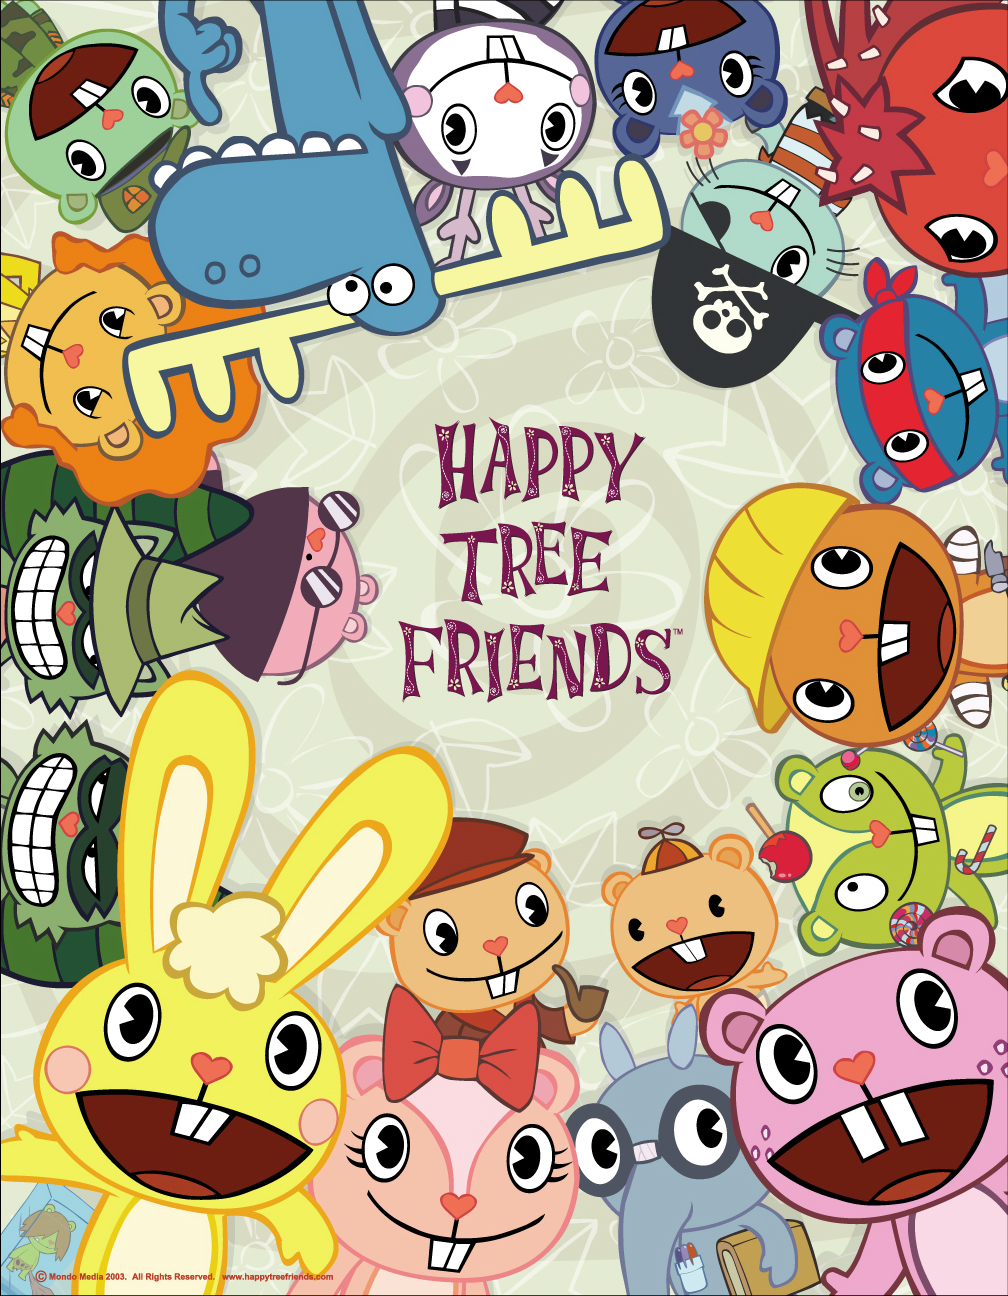 Happy tree friends (Gore) Happytreefriends.5